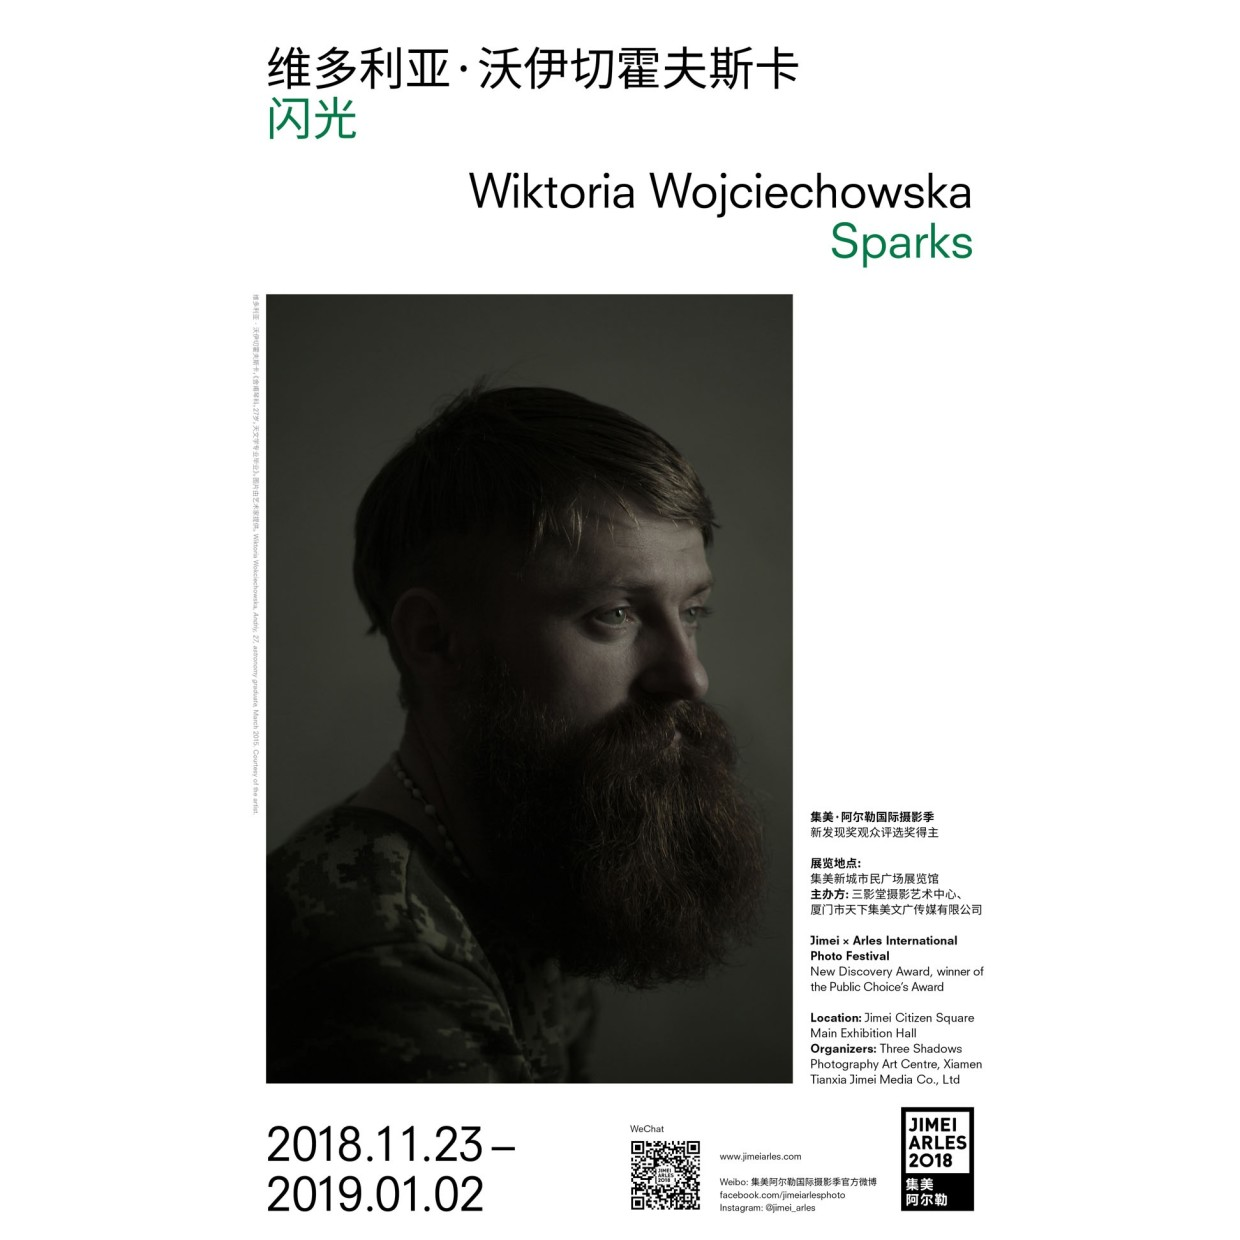 WIKTORIA WOJCIECHOWSKA SPARKS NEW DISCOVERY AWARD - WINNER OF THE PUBLIC CHOICE'S AWARD CURATED BY SÉBASTIEN DUPUY Sparks is a...